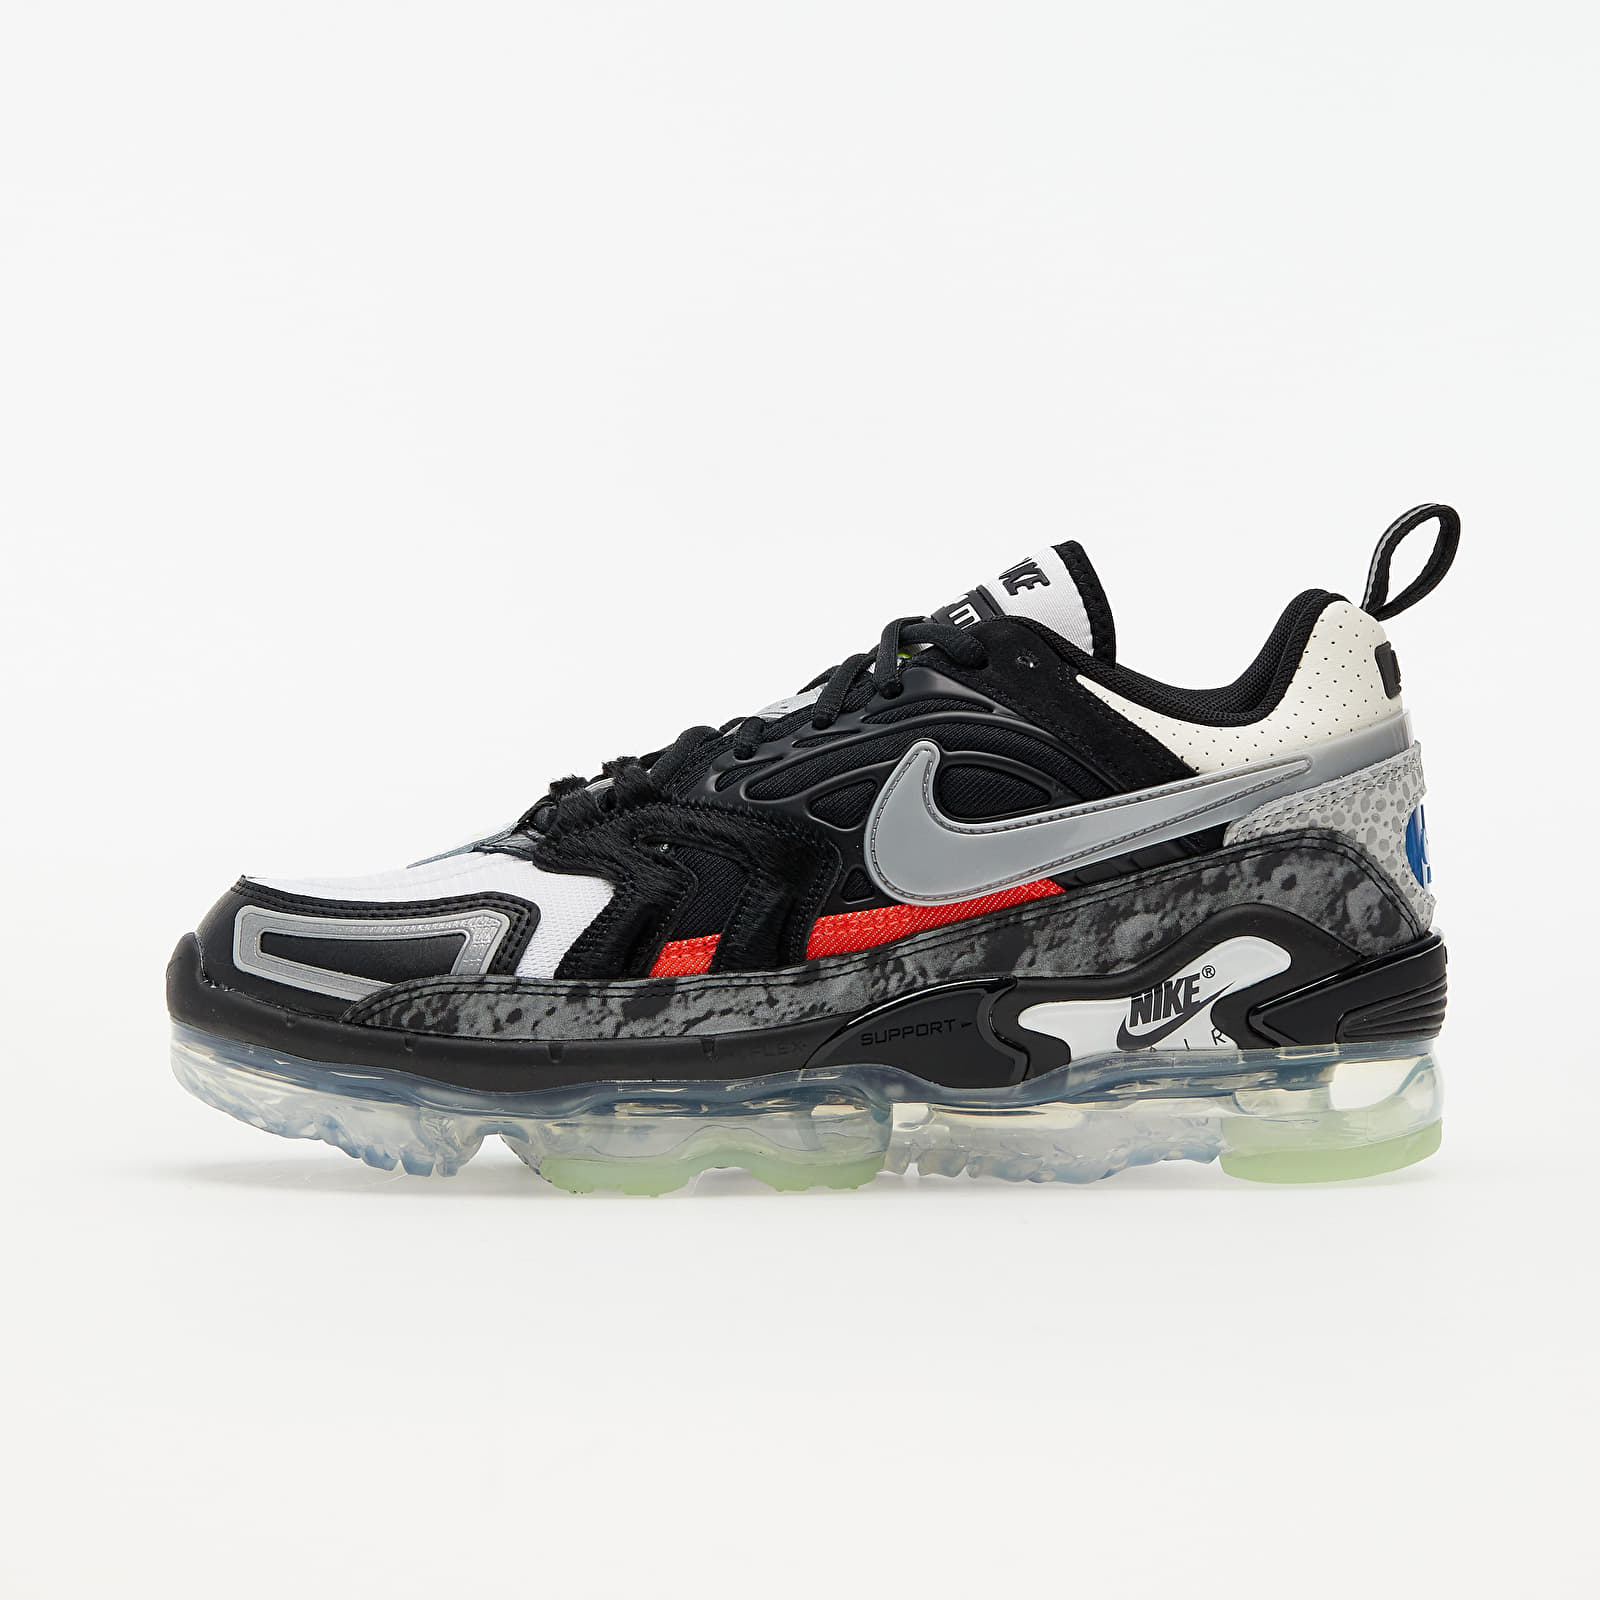 Nike Air Vapormax EVO NRG Black/ Clear-Metallic Silver-White EUR 45